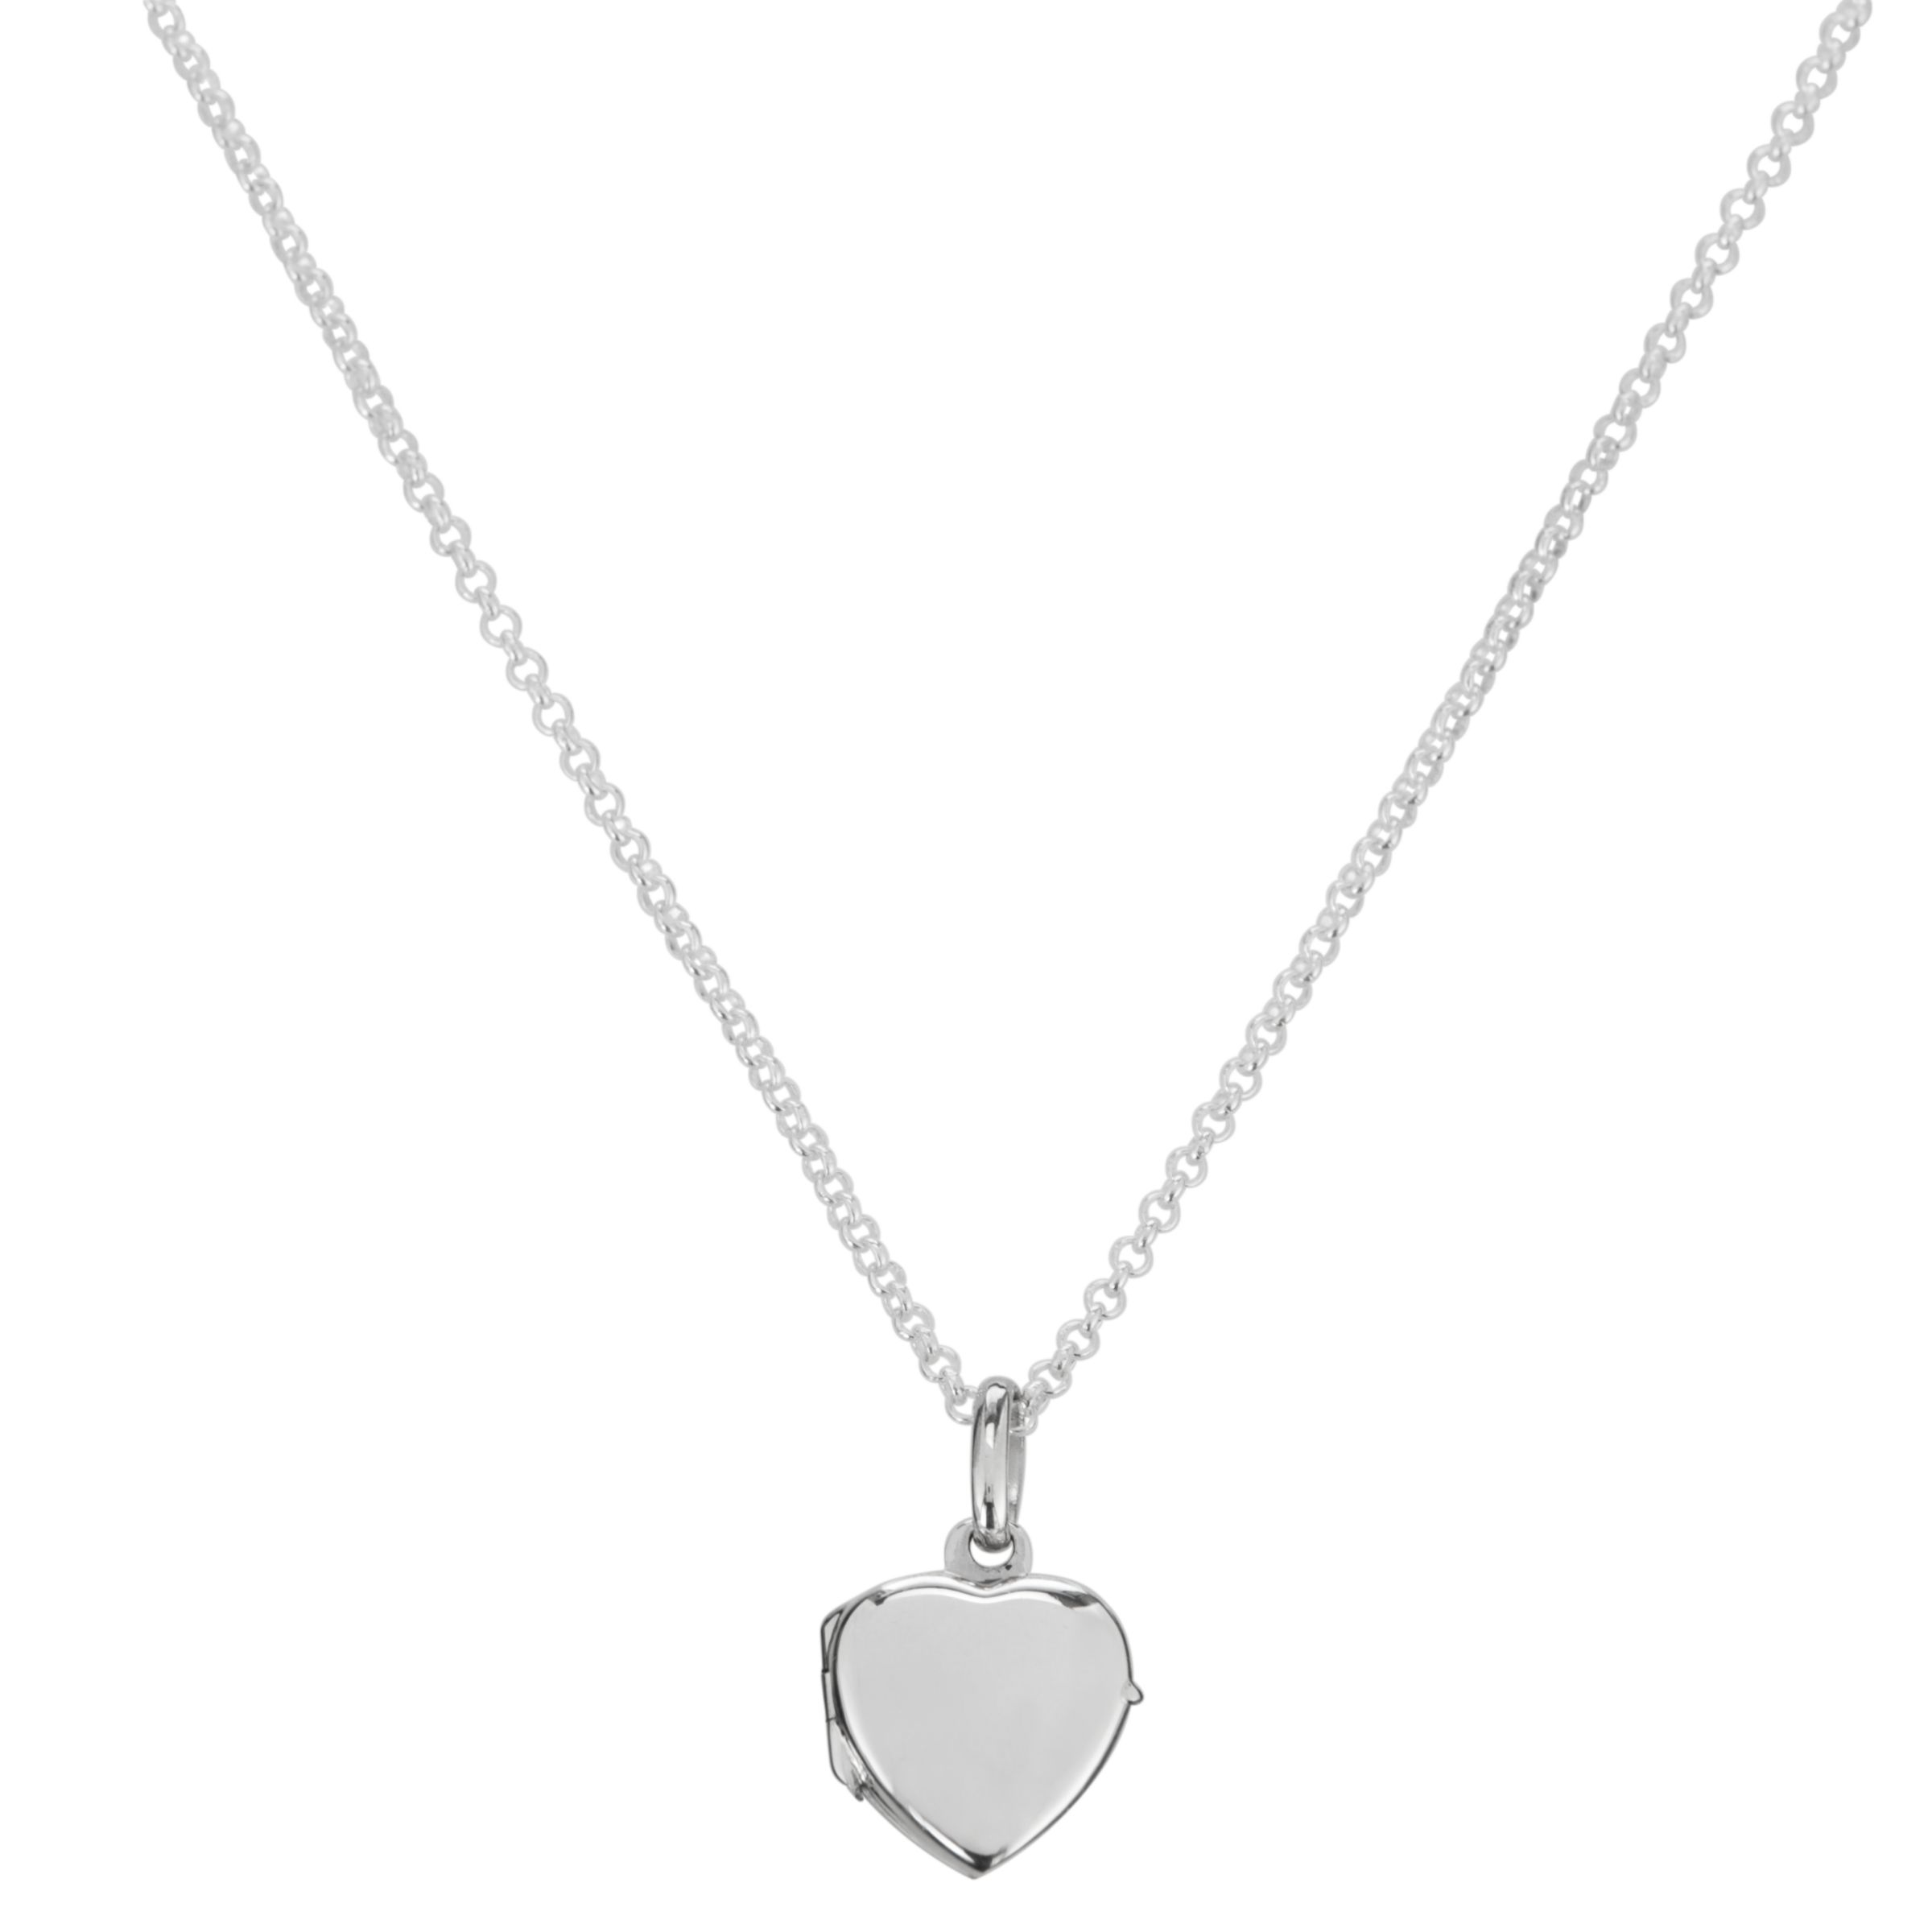 Martick My Heart Soars Secret Locket Necklace, Silver